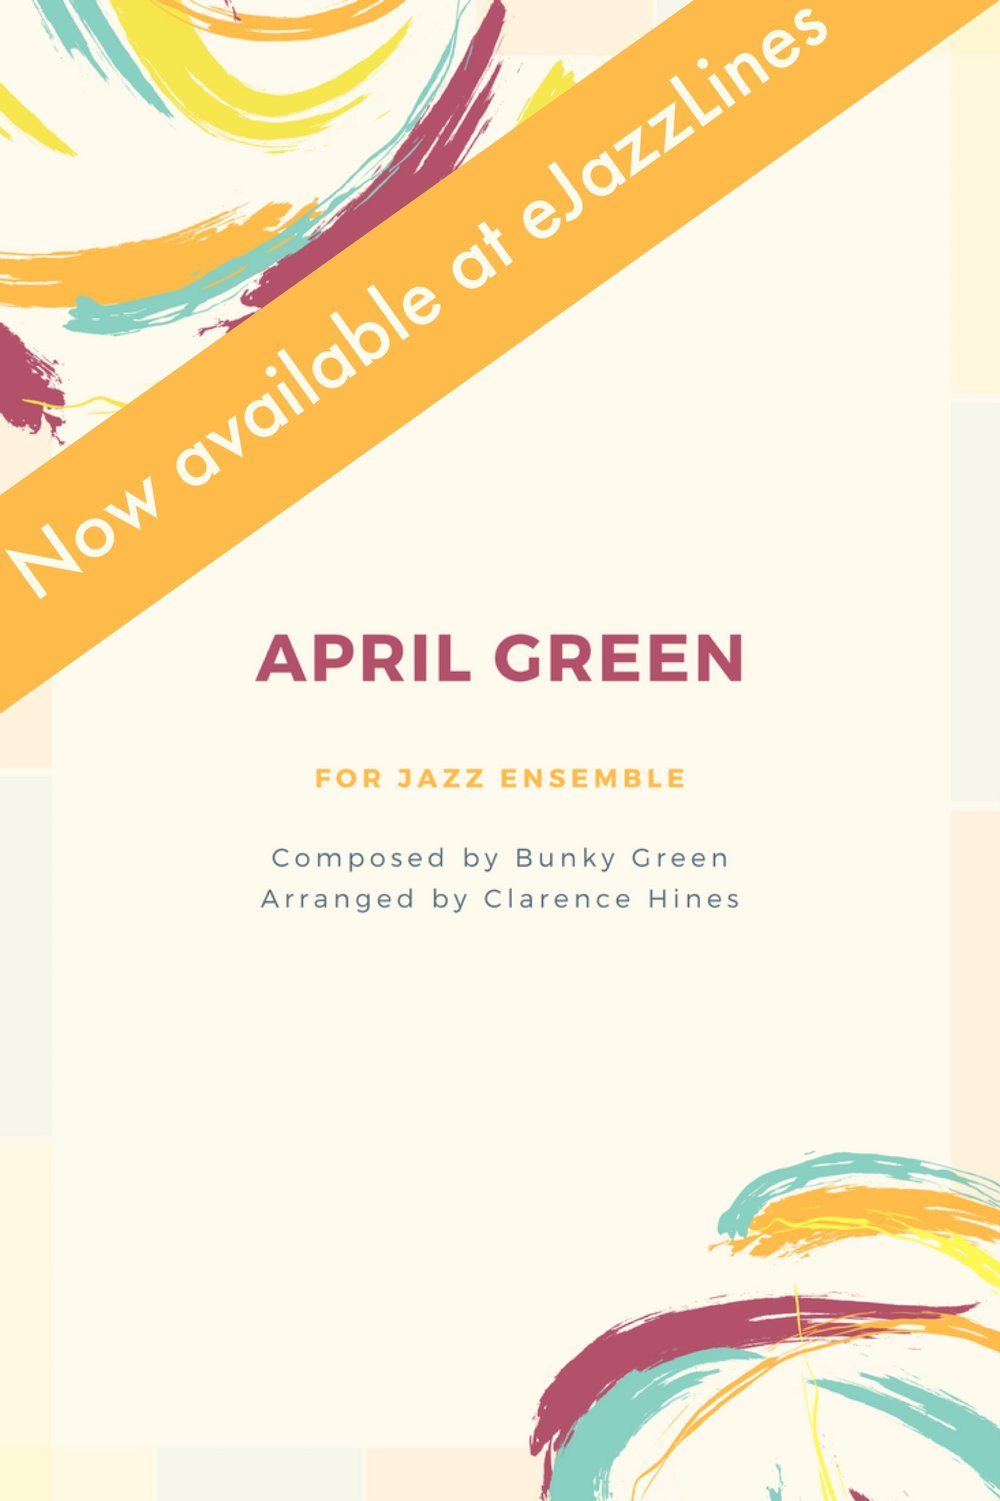 April Green - This recently published arrangement was commissioned for Alto saxophonist Bunky Green and the University of North Florida Jazz Ensemble I, and is the title track from a CD/DVD that featured the UNF Jazz Ensemble I and UNF Jazz Faculty.